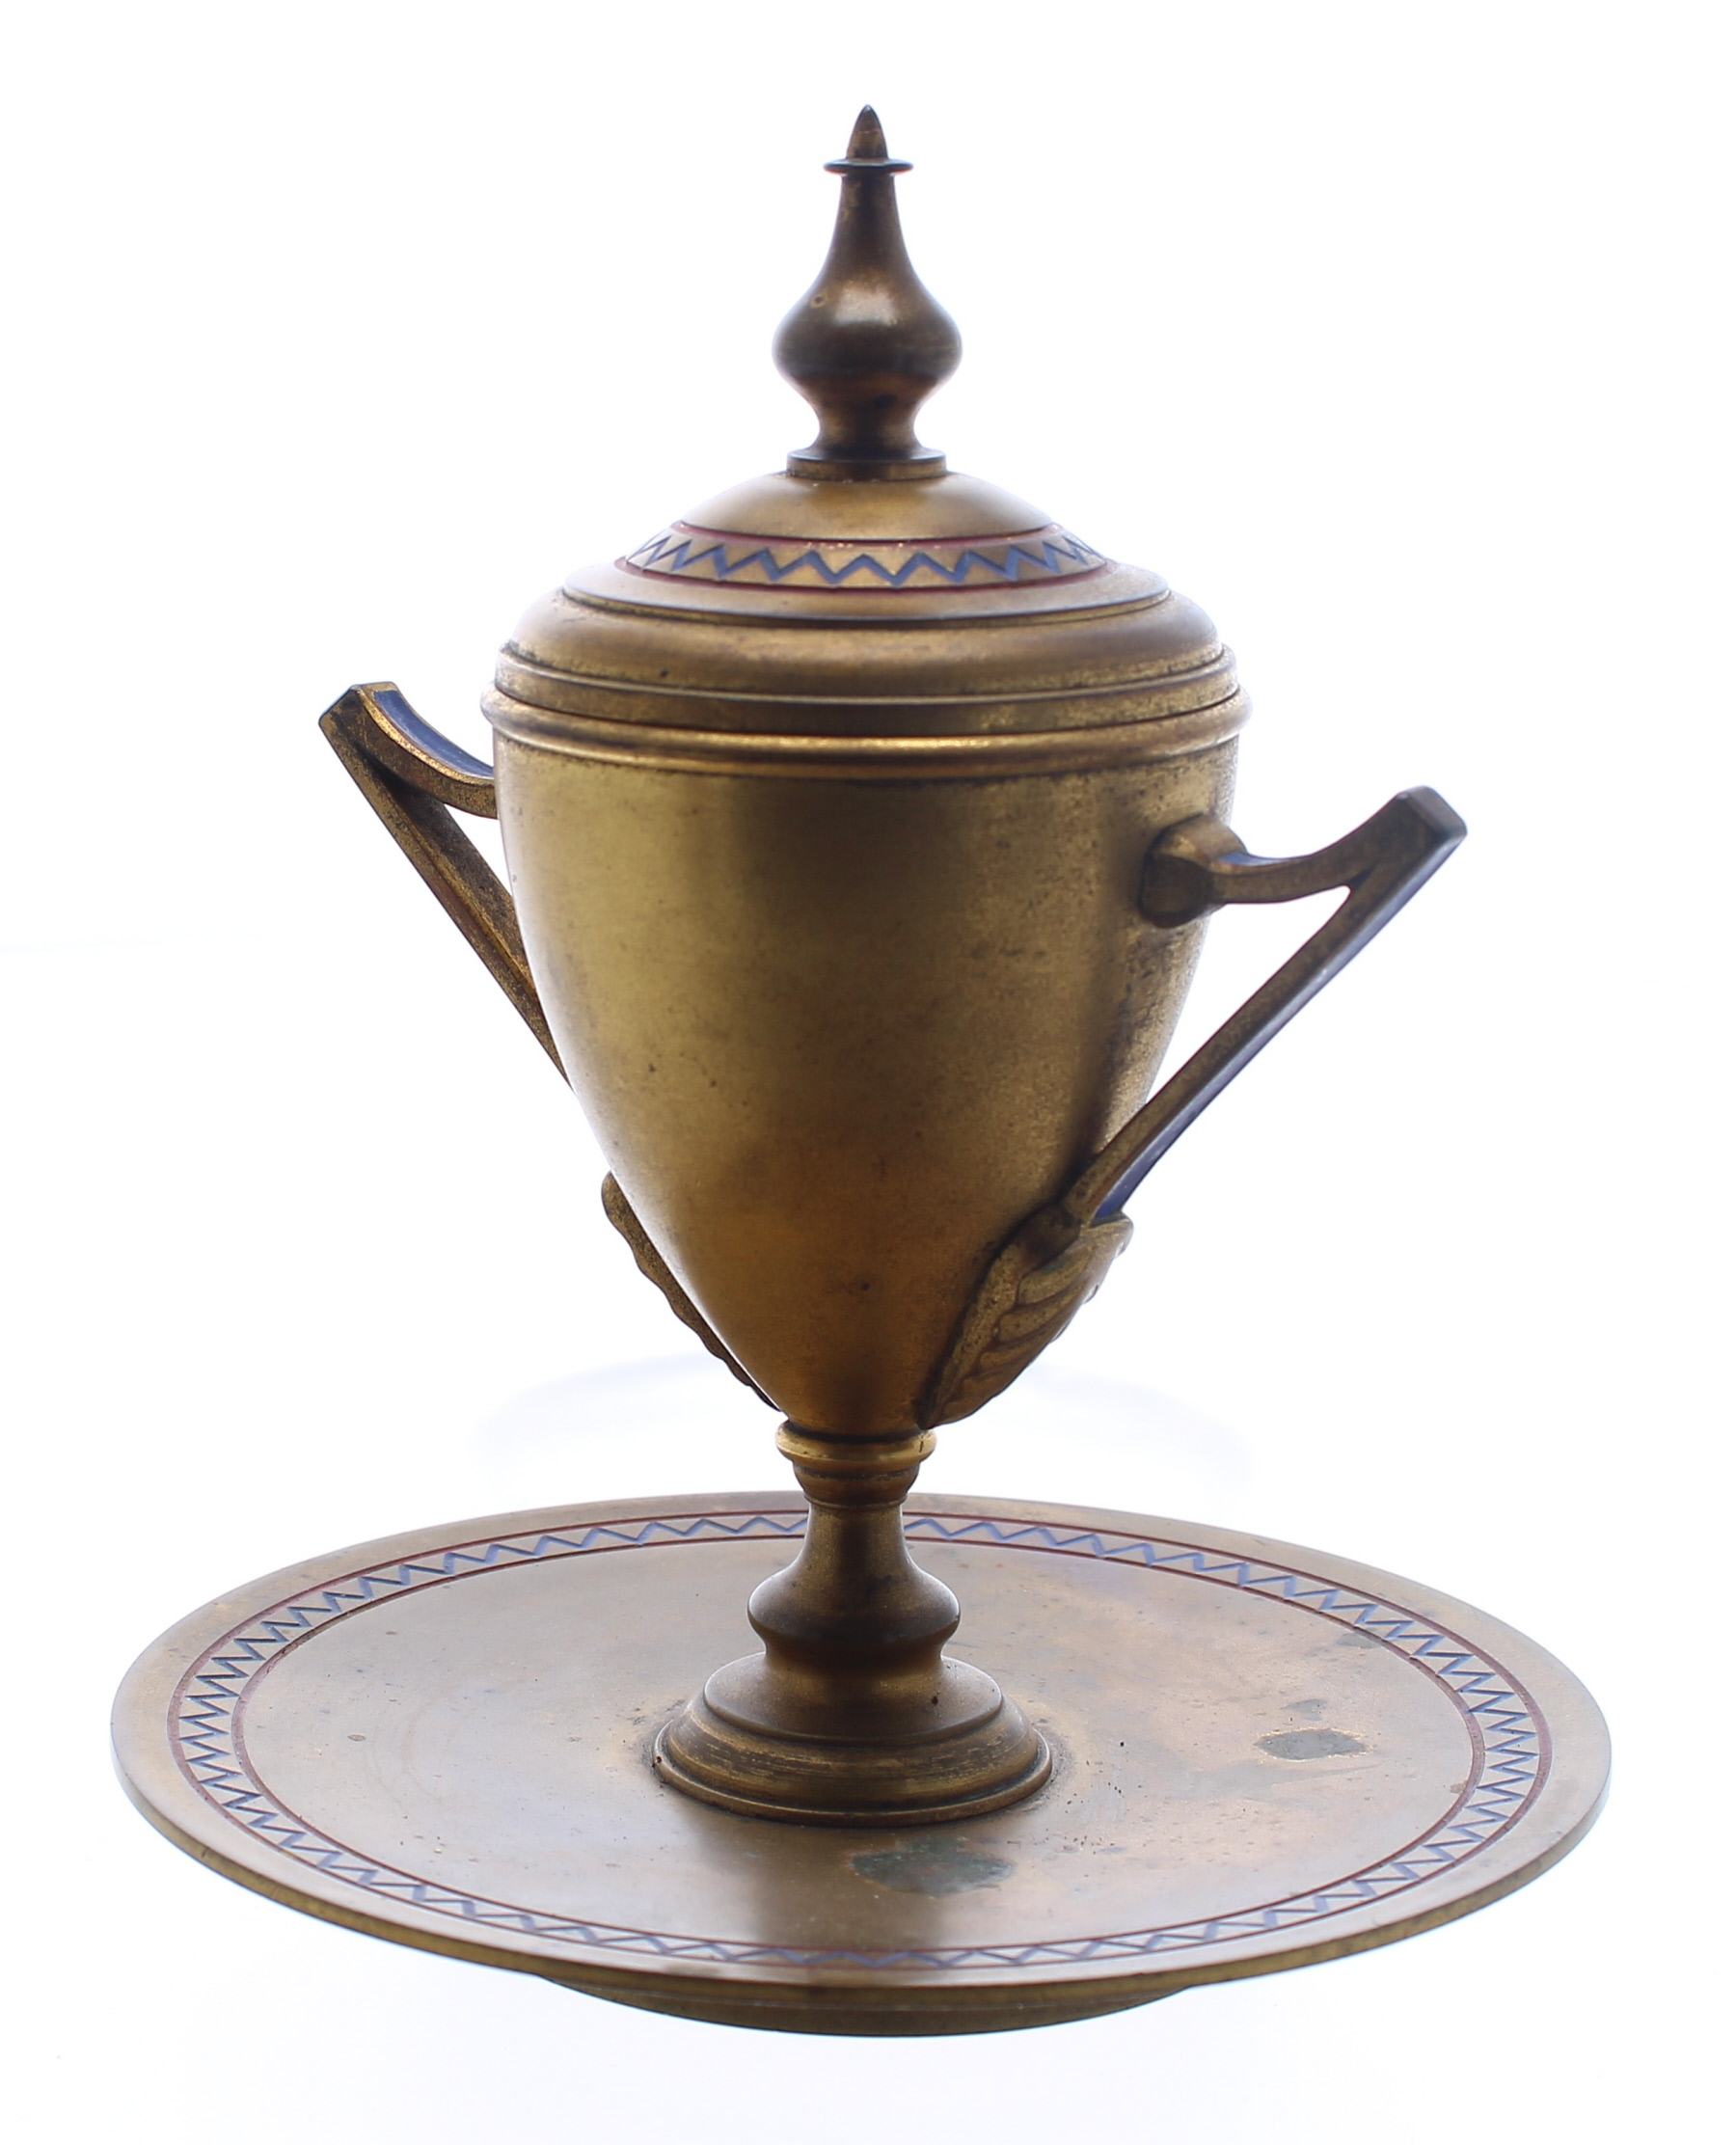 """Circular gilt inkwell in the form of a twin-handled urn, decorated with geometric blue borders, 5.5"""" - Image 3 of 3"""